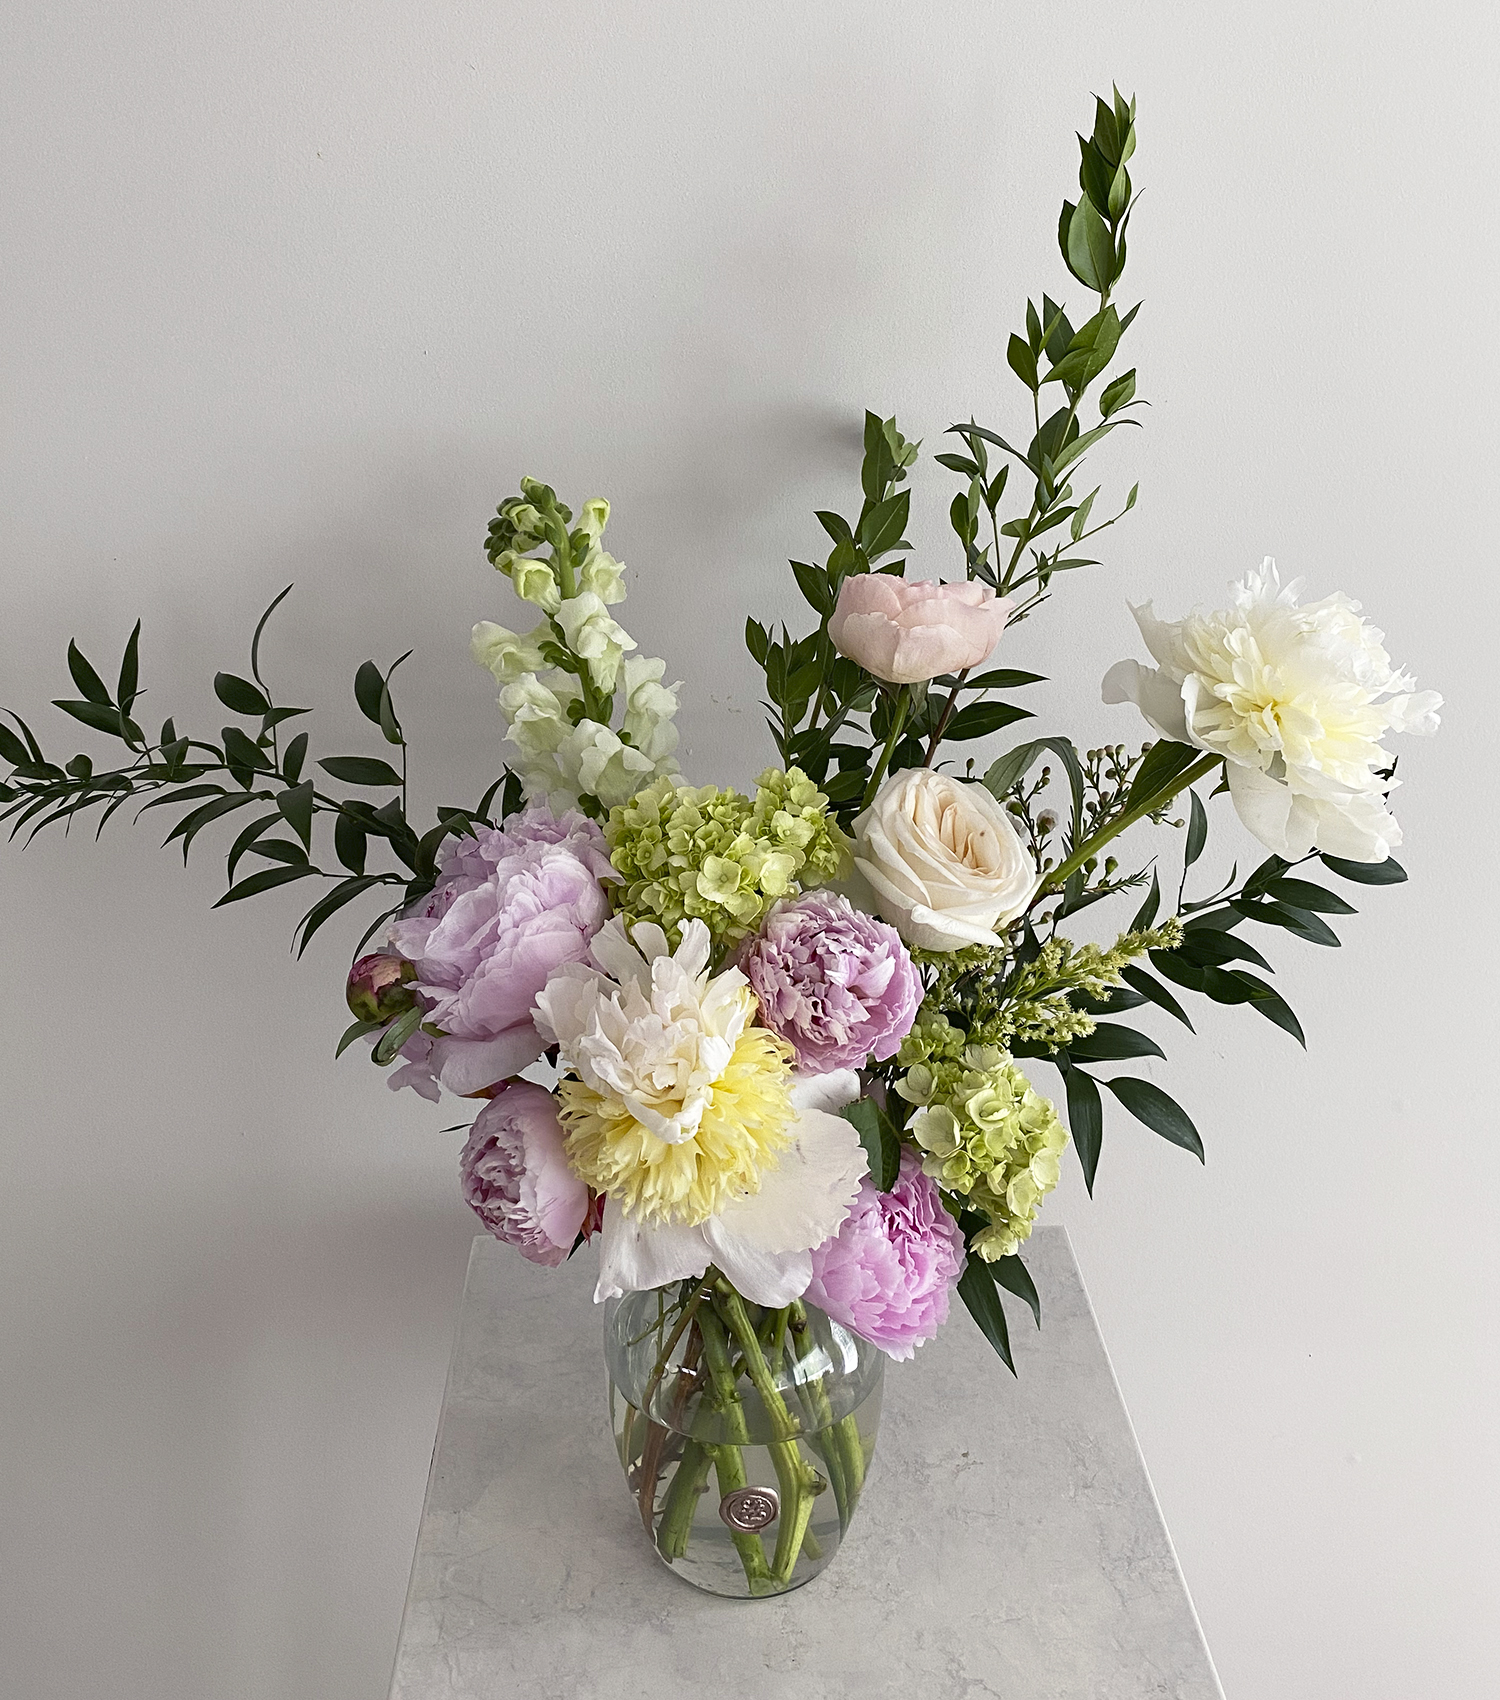 Gorgeous fresh floral arrangement in clear glass vase on marble table